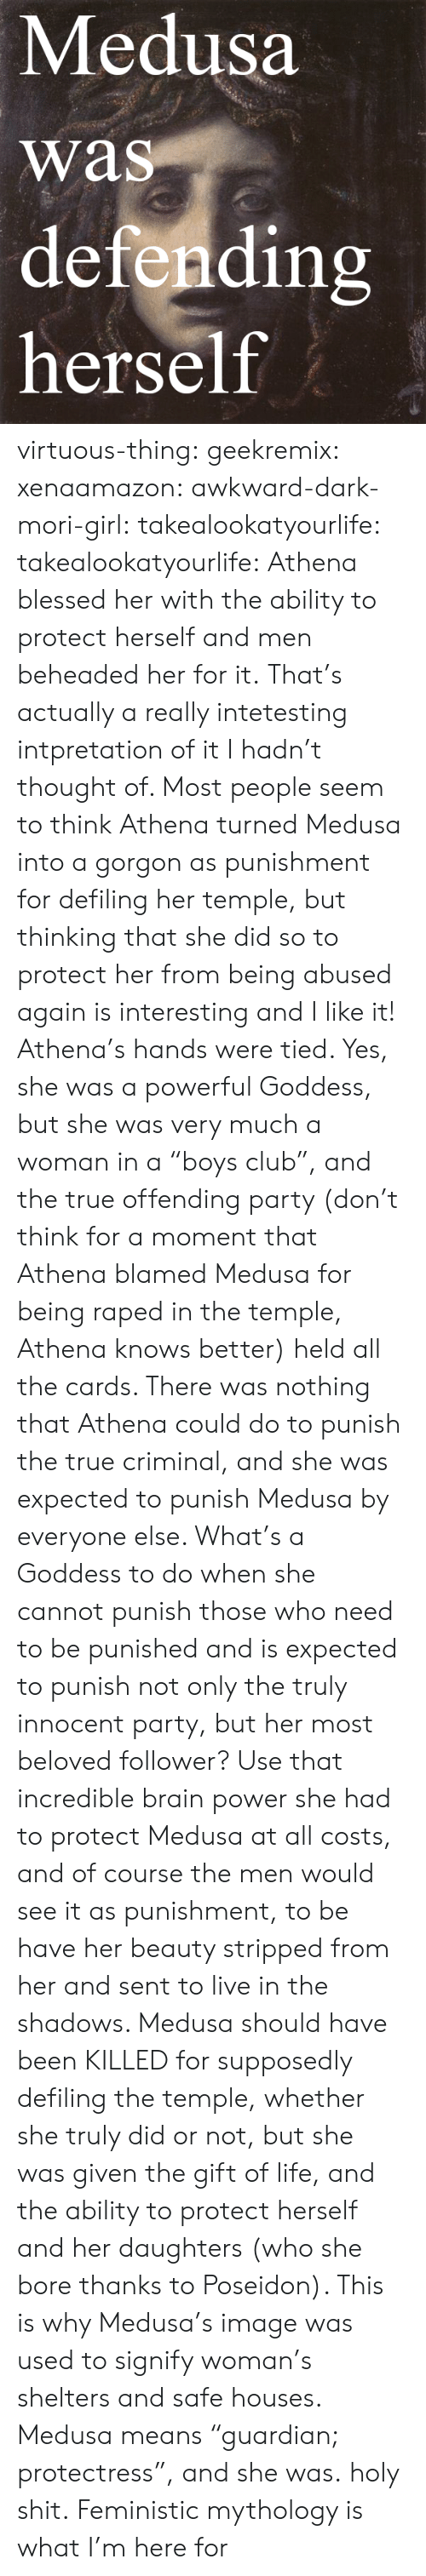 """Athena: Medusa  was  defendin  herself  rs virtuous-thing: geekremix:  xenaamazon:  awkward-dark-mori-girl:  takealookatyourlife:  takealookatyourlife: Athena blessed her with the ability to protect herself and men beheaded her for it.  That's actually a really intetesting intpretation of it I hadn't thought of. Most people seem to think Athena turned Medusa into a gorgon as punishment for defiling her temple, but thinking that she did so to protect her from being abused again is interesting and I like it!   Athena's hands were tied. Yes, she was a powerful Goddess, but she was very much a woman in a """"boys club"""", and the true offending party (don't think for a moment that Athena blamed Medusa for being raped in the temple, Athena knows better) held all the cards. There was nothing that Athena could do to punish the true criminal, and she was expected to punish Medusa by everyone else. What's a Goddess to do when she cannot punish those who need to be punished and is expected to punish not only the truly innocent party, but her most beloved follower? Use that incredible brain power she had to protect Medusa at all costs, and of course the men would see it as punishment, to be have her beauty stripped from her and sent to live in the shadows. Medusa should have been KILLED for supposedly defiling the temple, whether she truly did or not, but she was given the gift of life, and the ability to protect herself and her daughters (who she bore thanks to Poseidon). This is why Medusa's image was used to signify woman's shelters and safe houses. Medusa means """"guardian; protectress"""", and she was.  holy shit.   Feministic mythology is what I'm here for"""